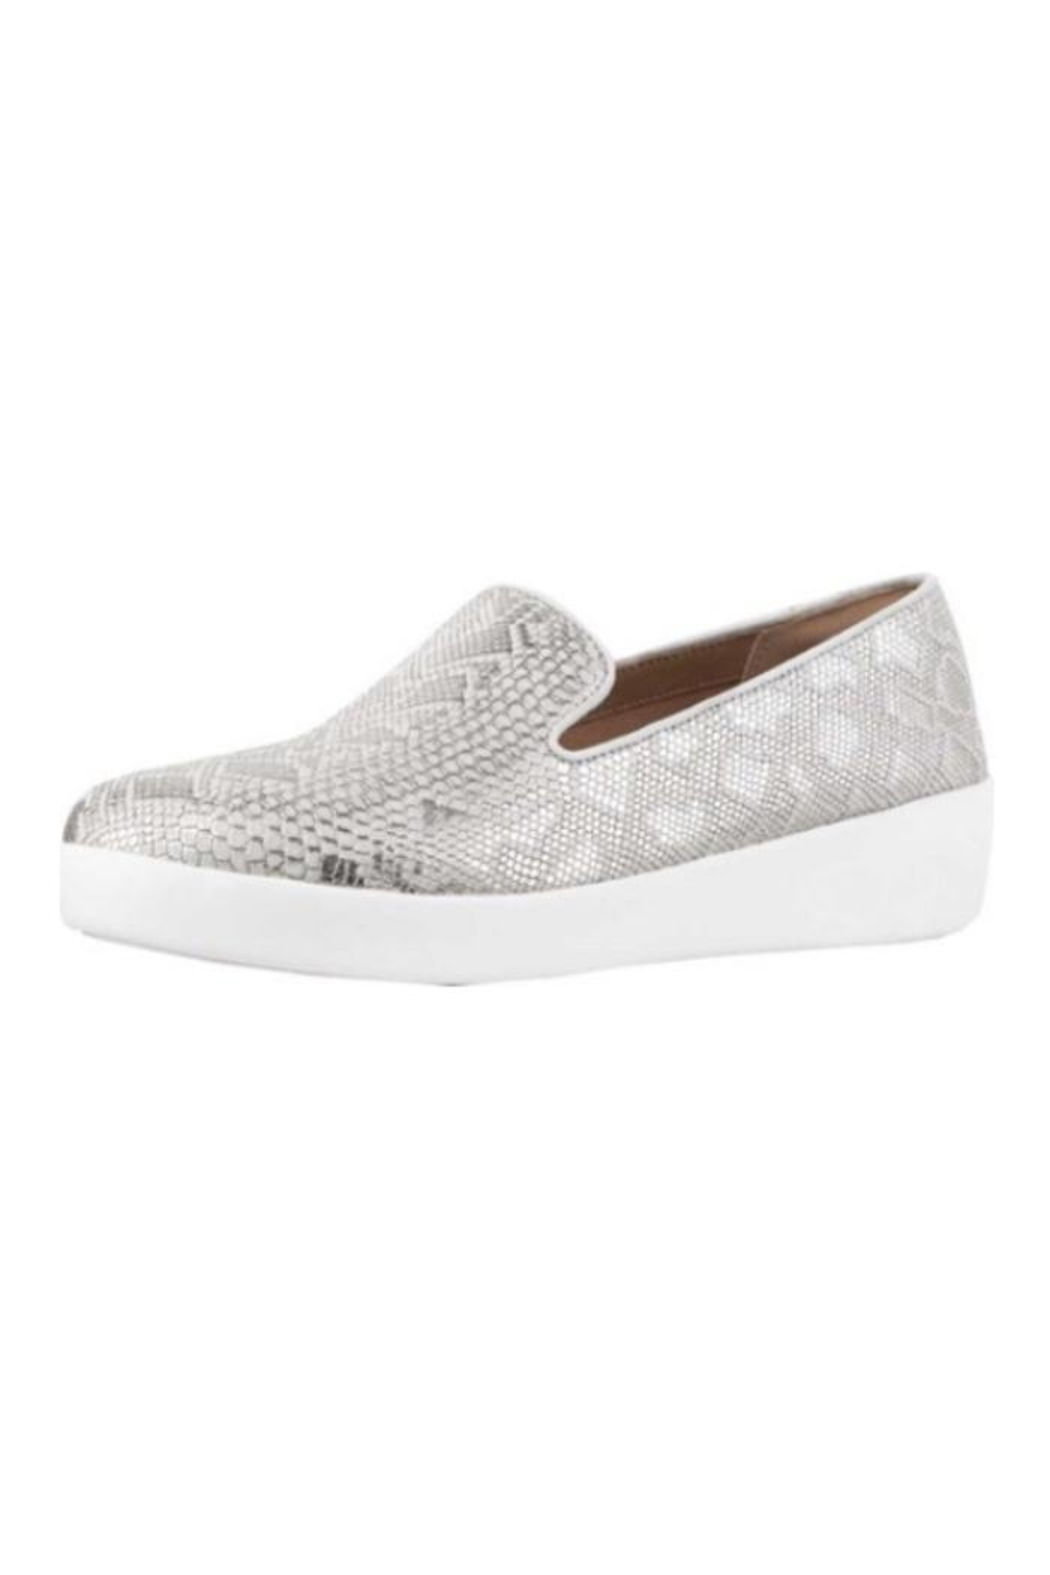 Fitflop Audrey Python - Front Cropped Image